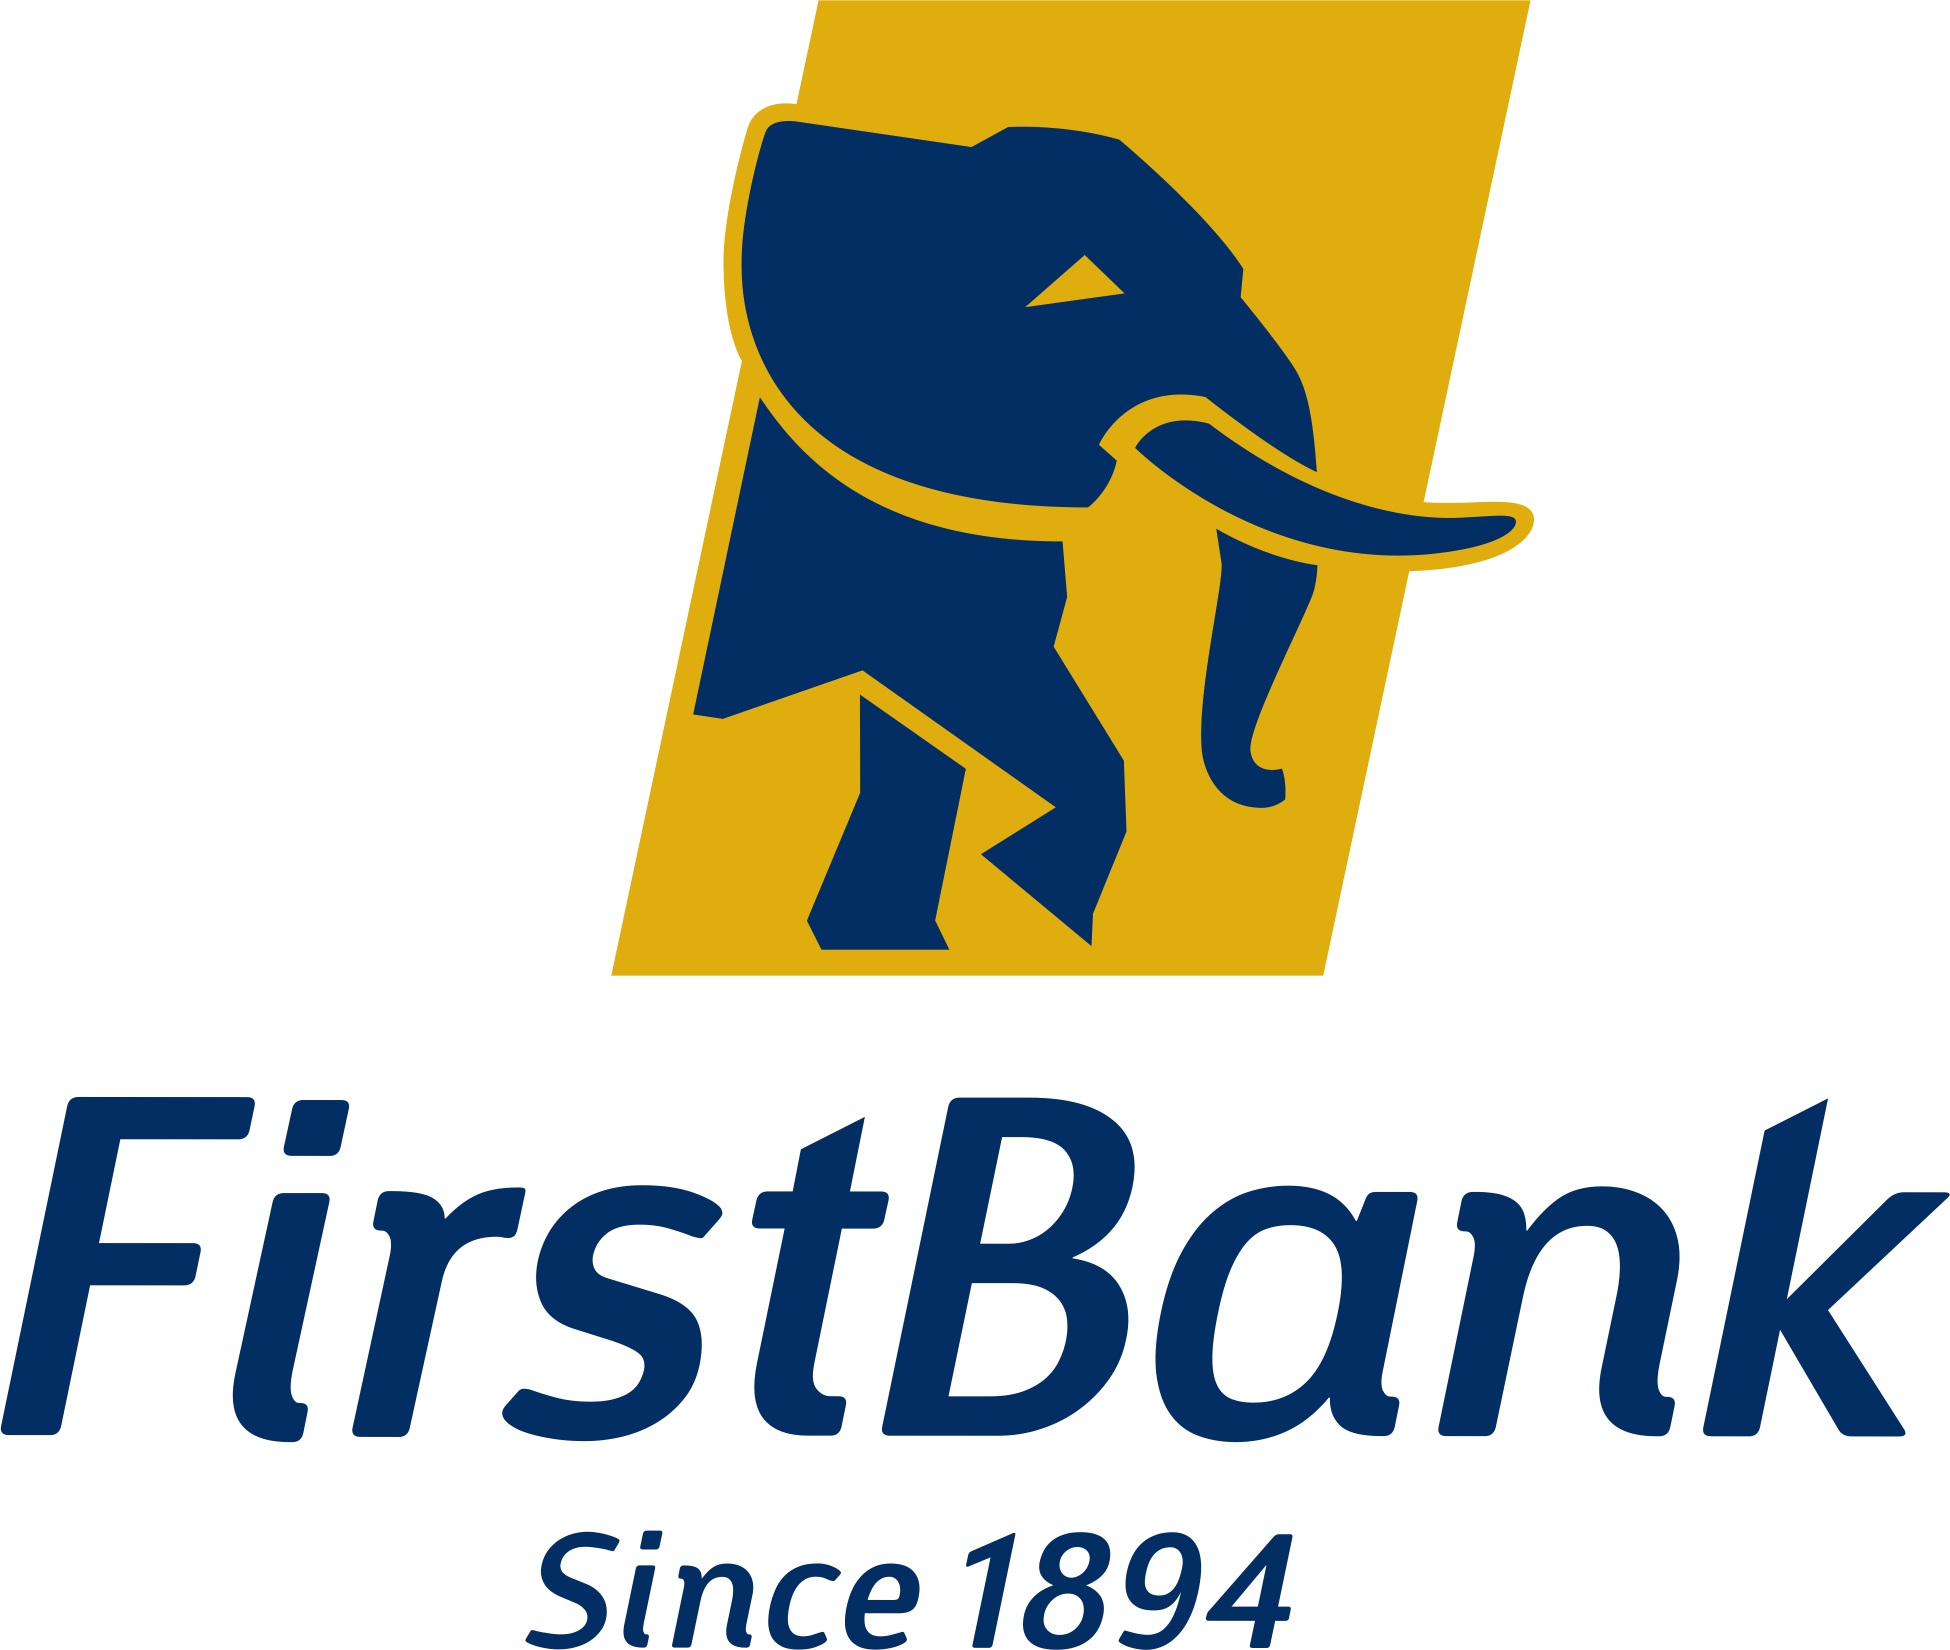 FirstBank Cardholders Records N1.18trn In Transactions Value During Lockdown